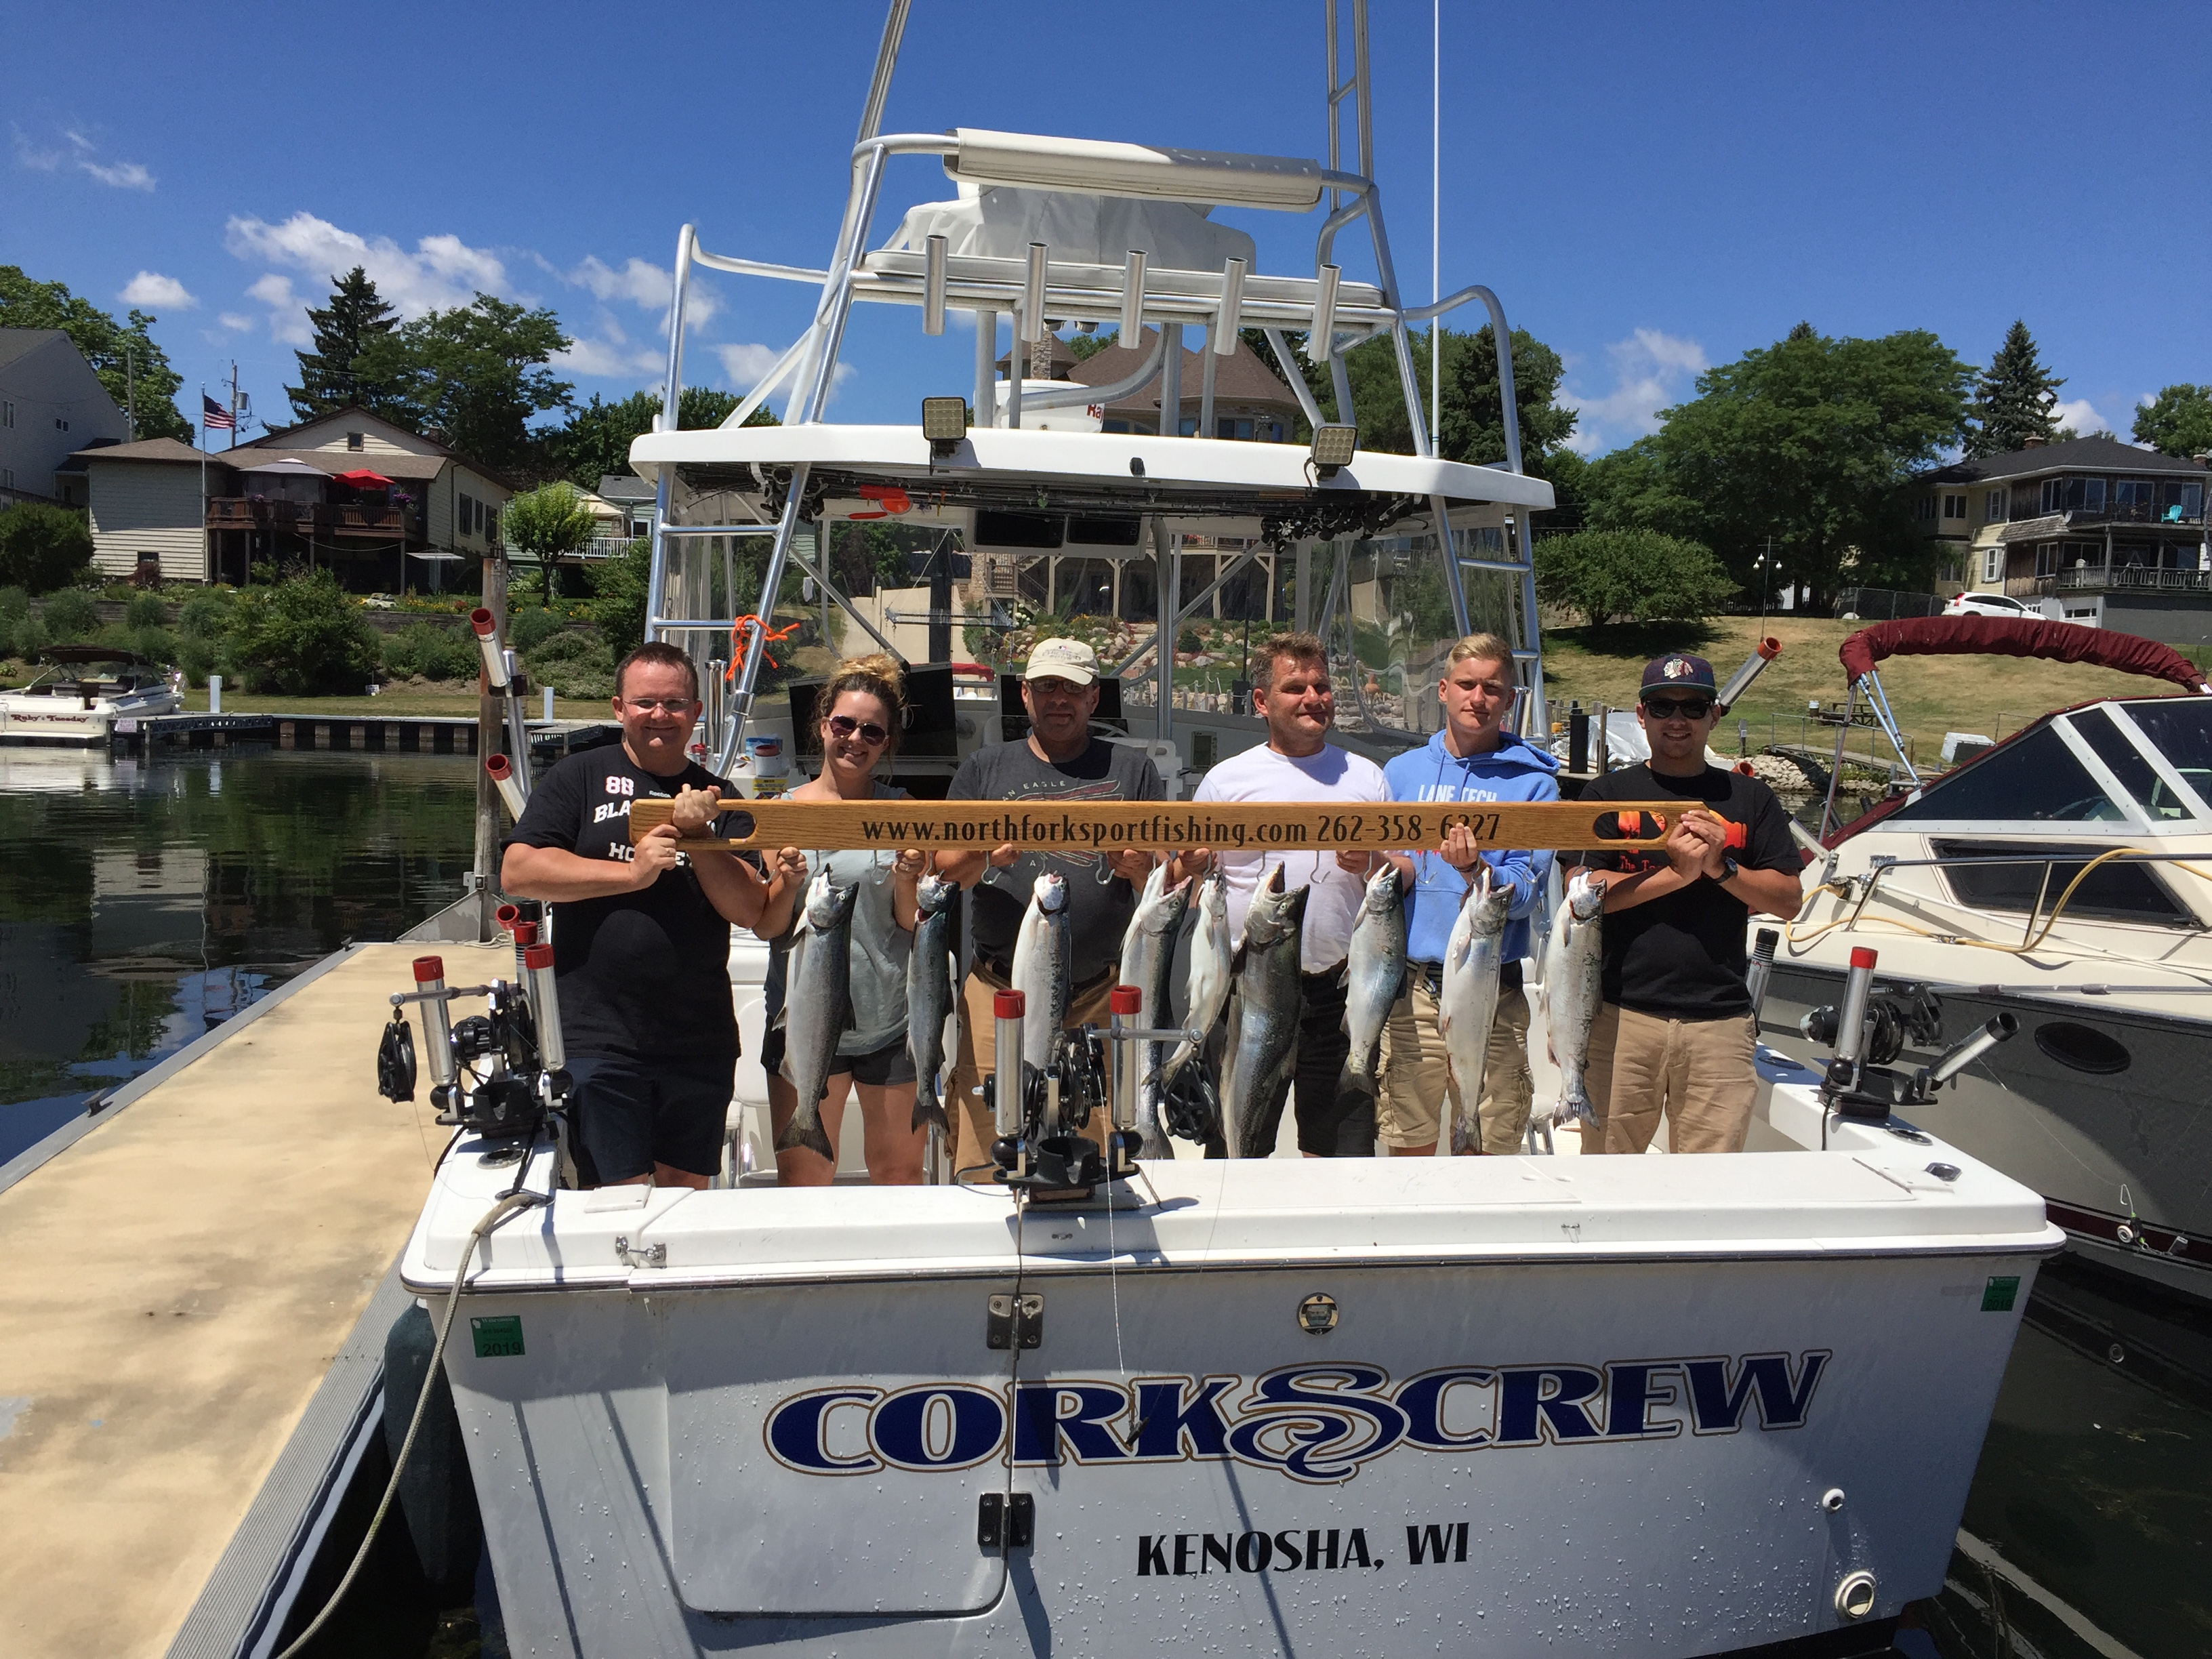 trout-salmon-group-caught-on-corkscrew-at-kenosha-wi